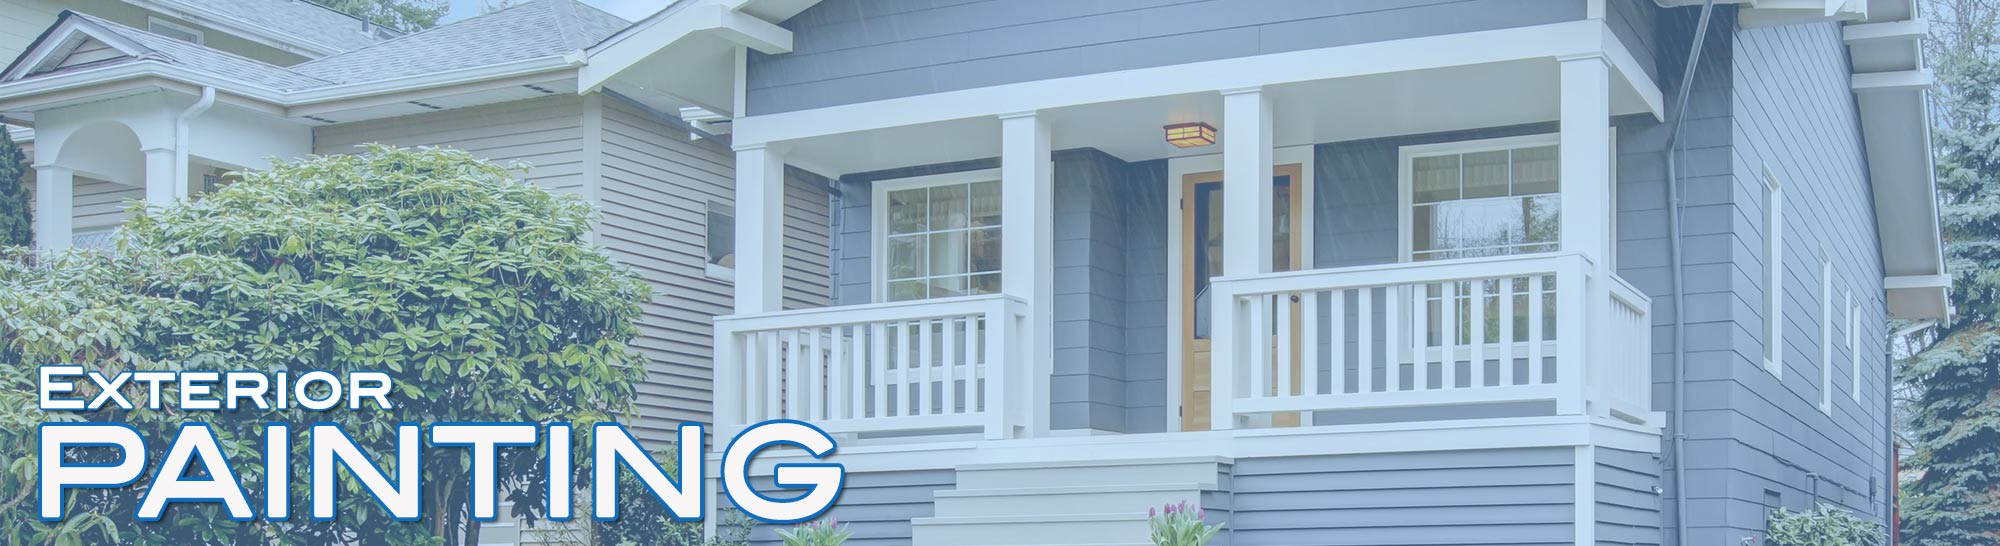 Luna Restoration Exterior Painting Company Raleigh Cary Nc - Exterior-painting-house